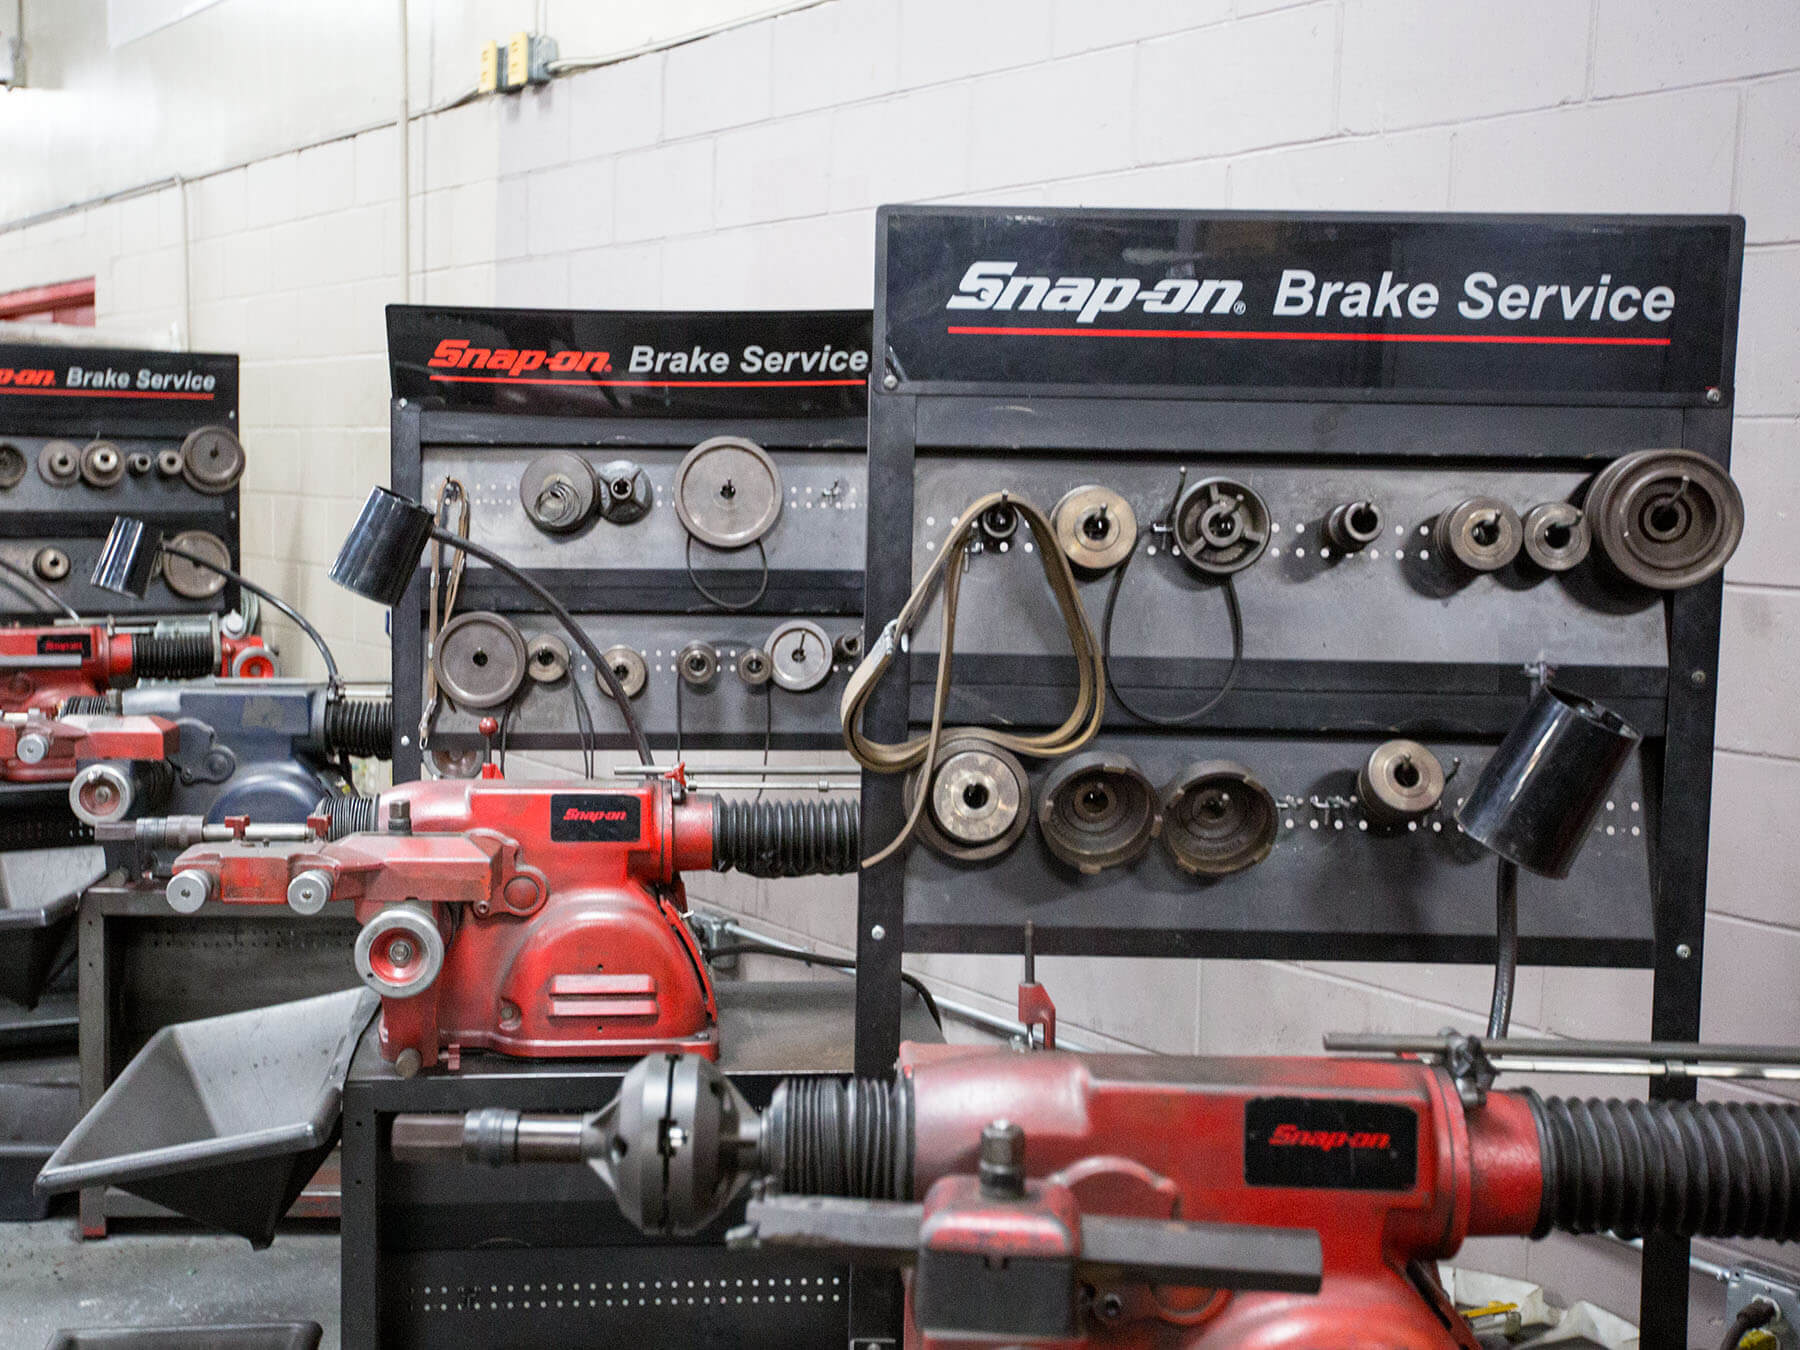 Snap on brake service tools